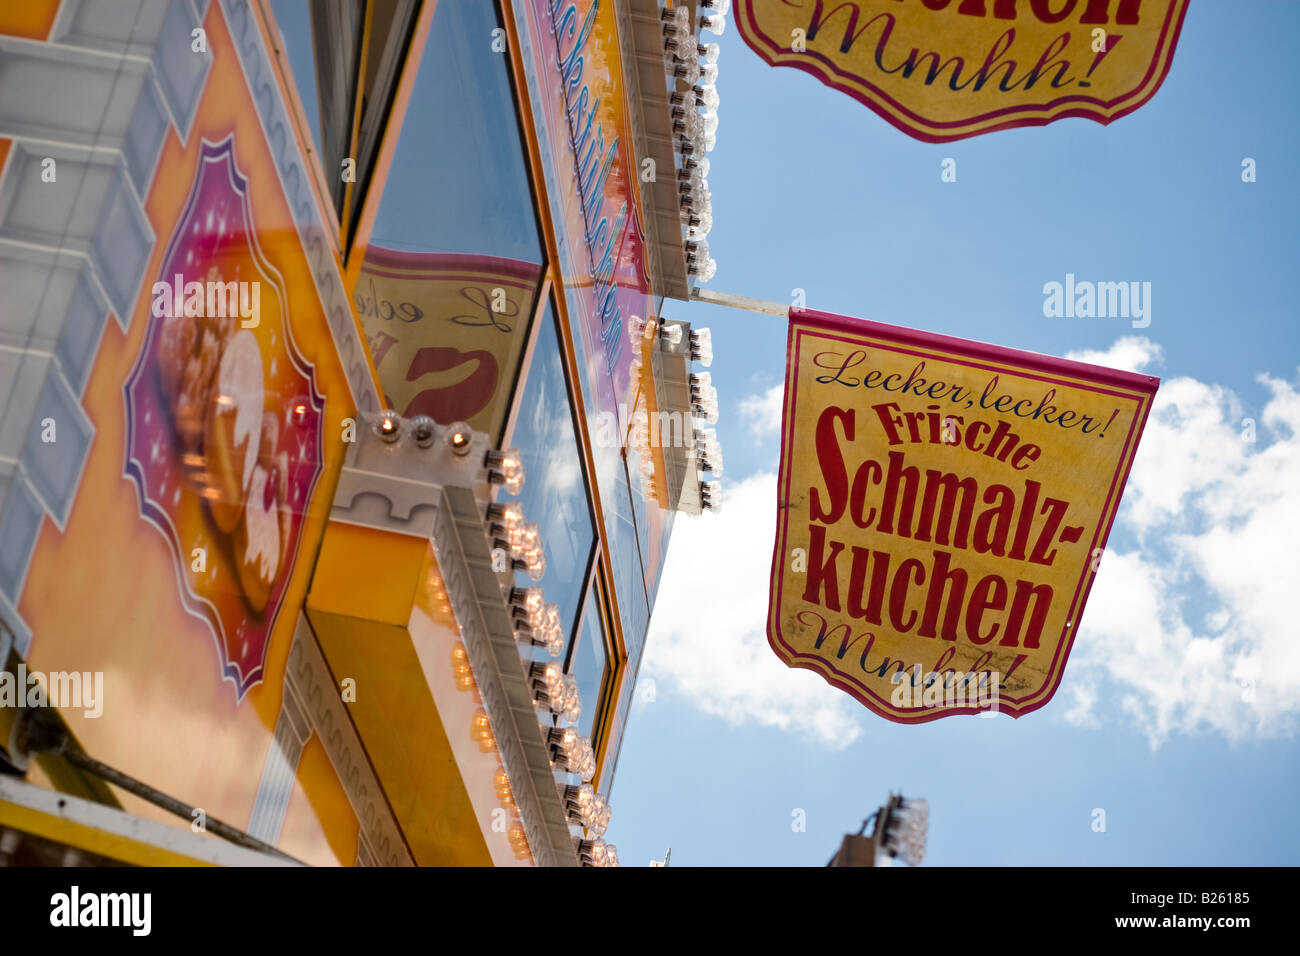 Sign advertising Schmalzkuchen a local culinary speciality at Hafengeburtstag a street party in the harbour of Hamburg, - Stock Image